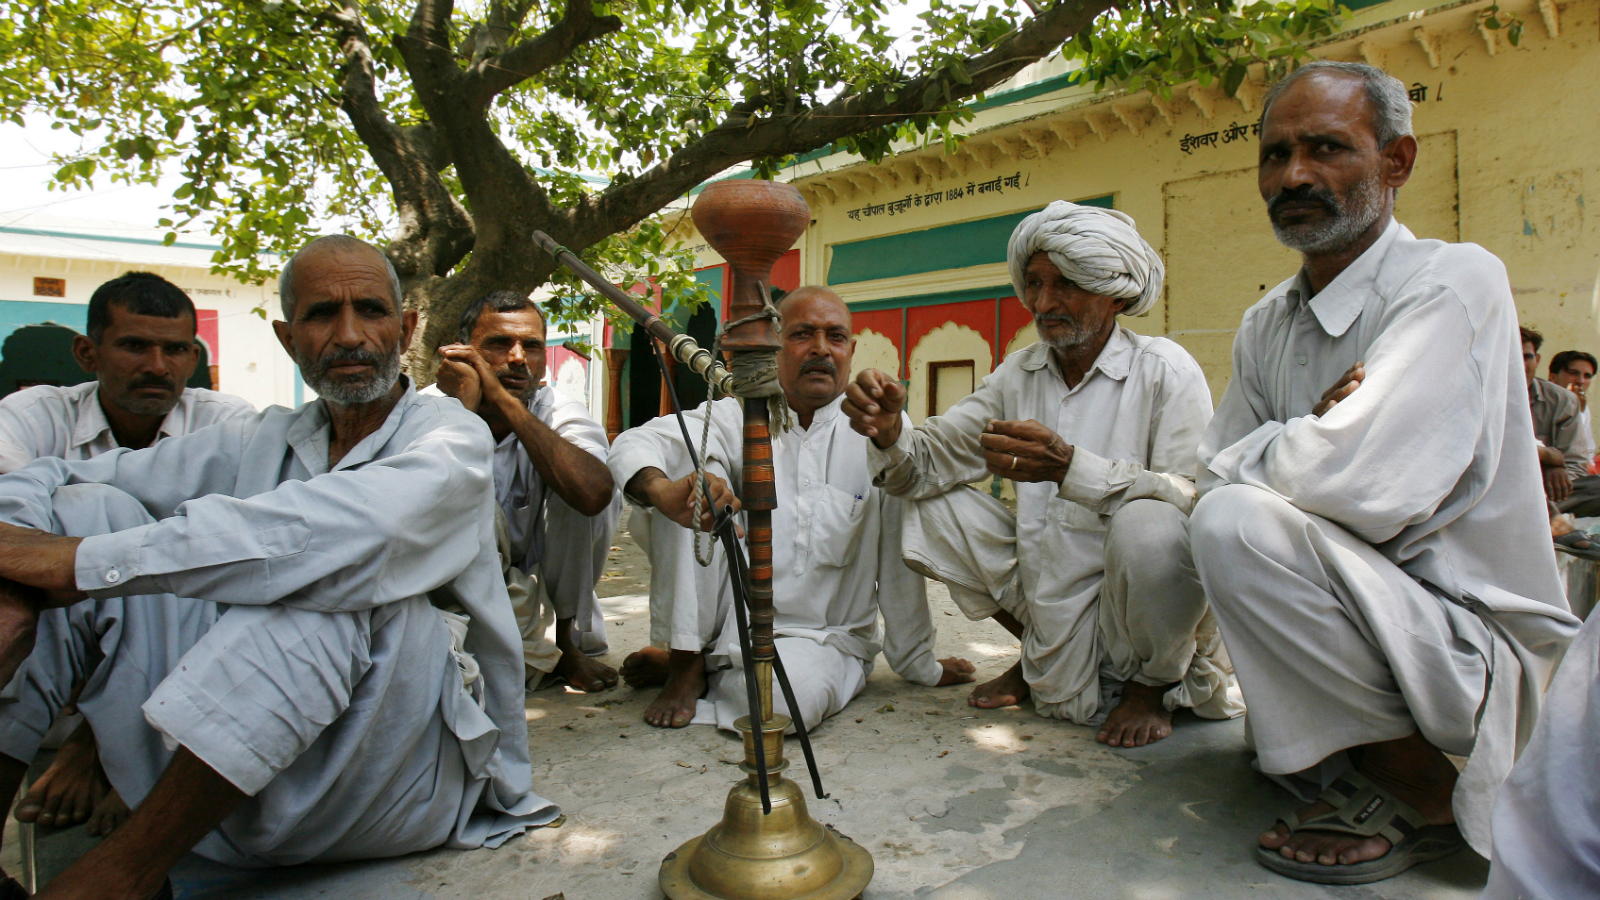 India-Pakistan peace: Can the panchayat system help? — Quartz India